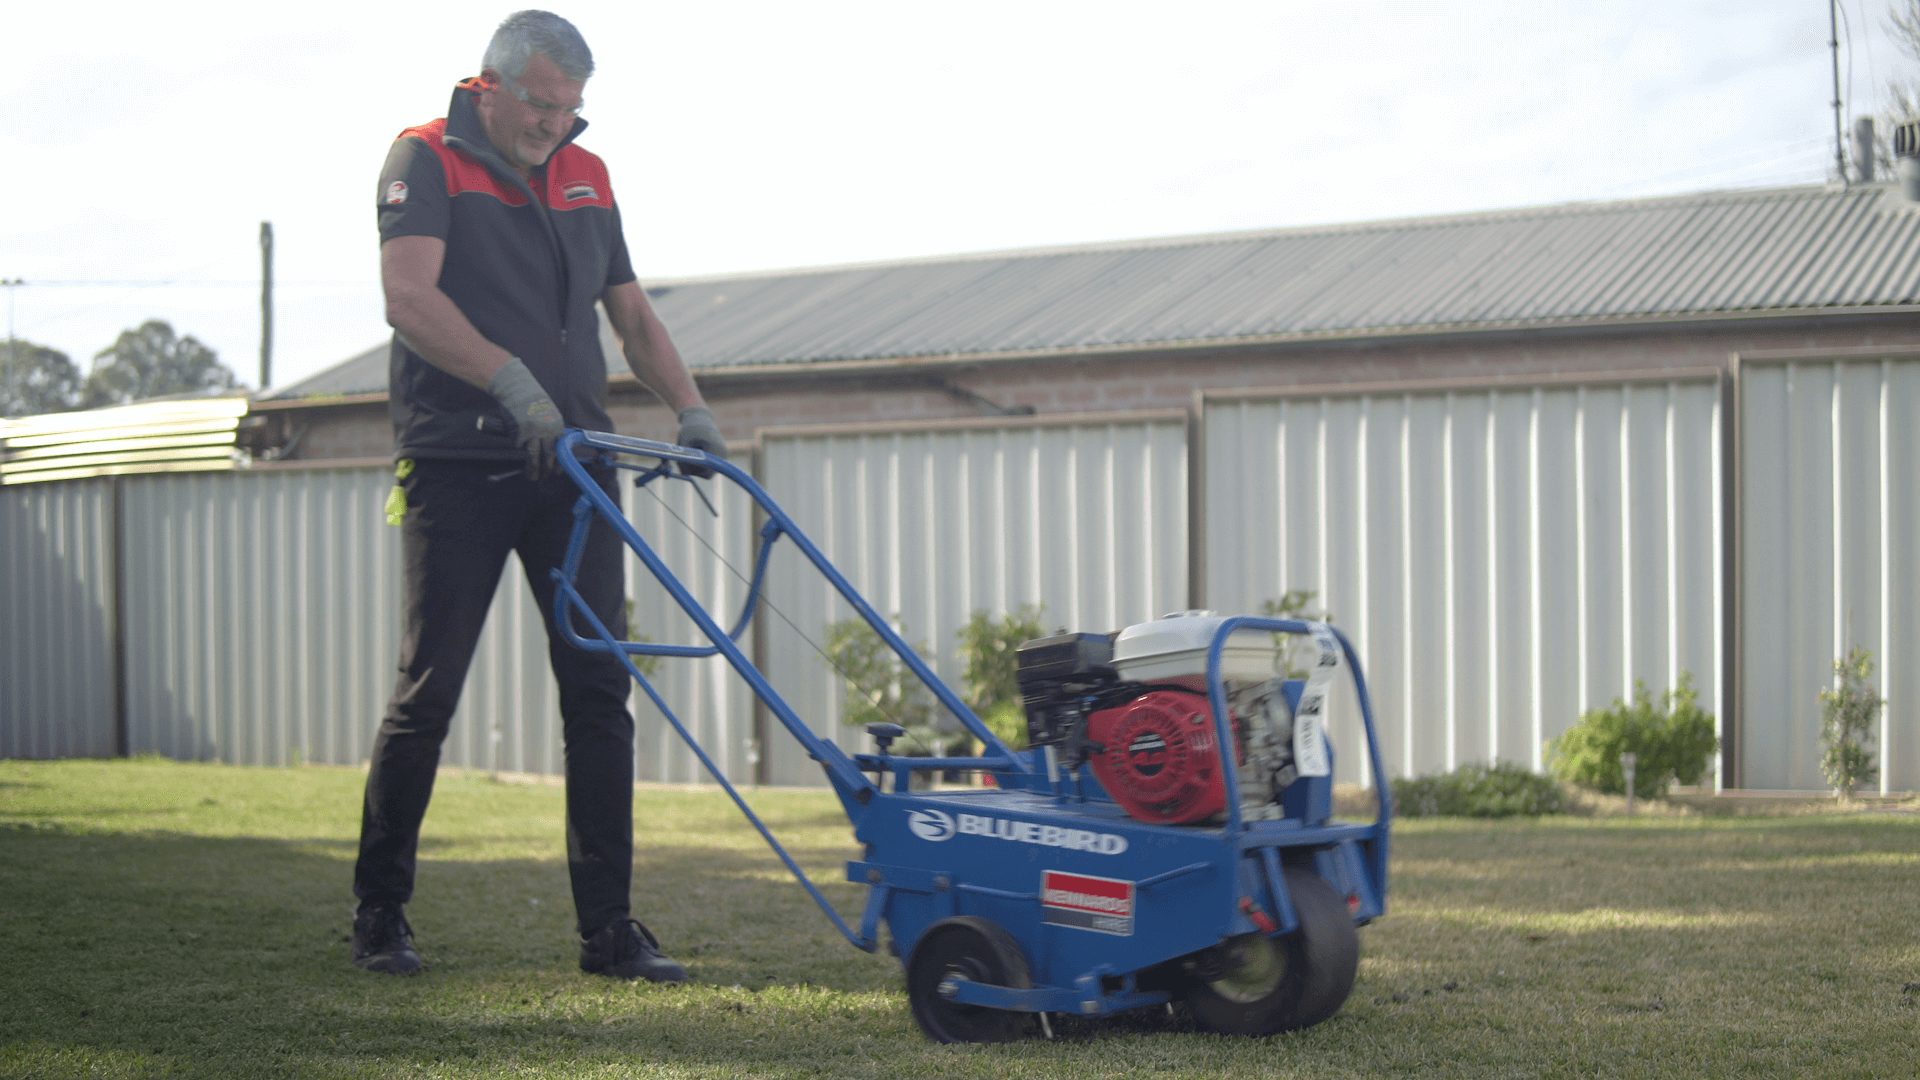 Preparing your lawn